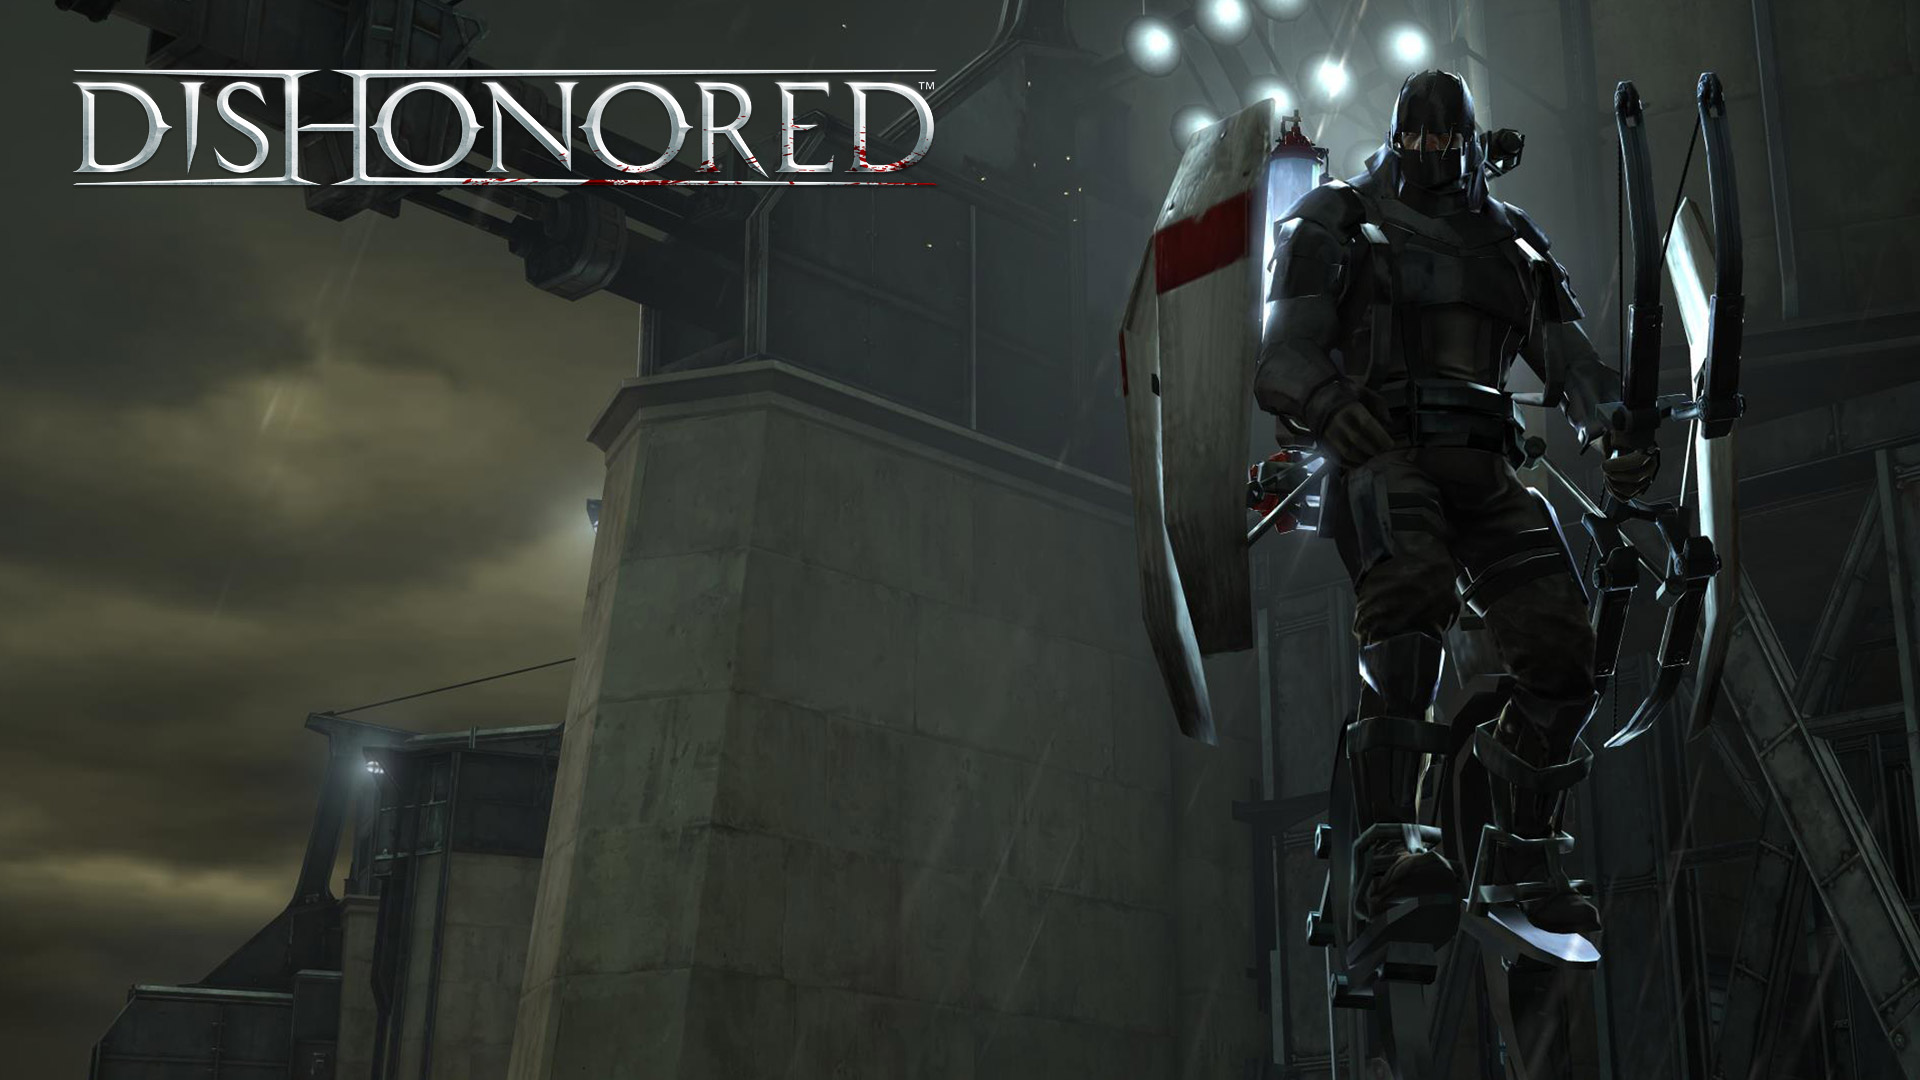 Dishonored wallpaper 14